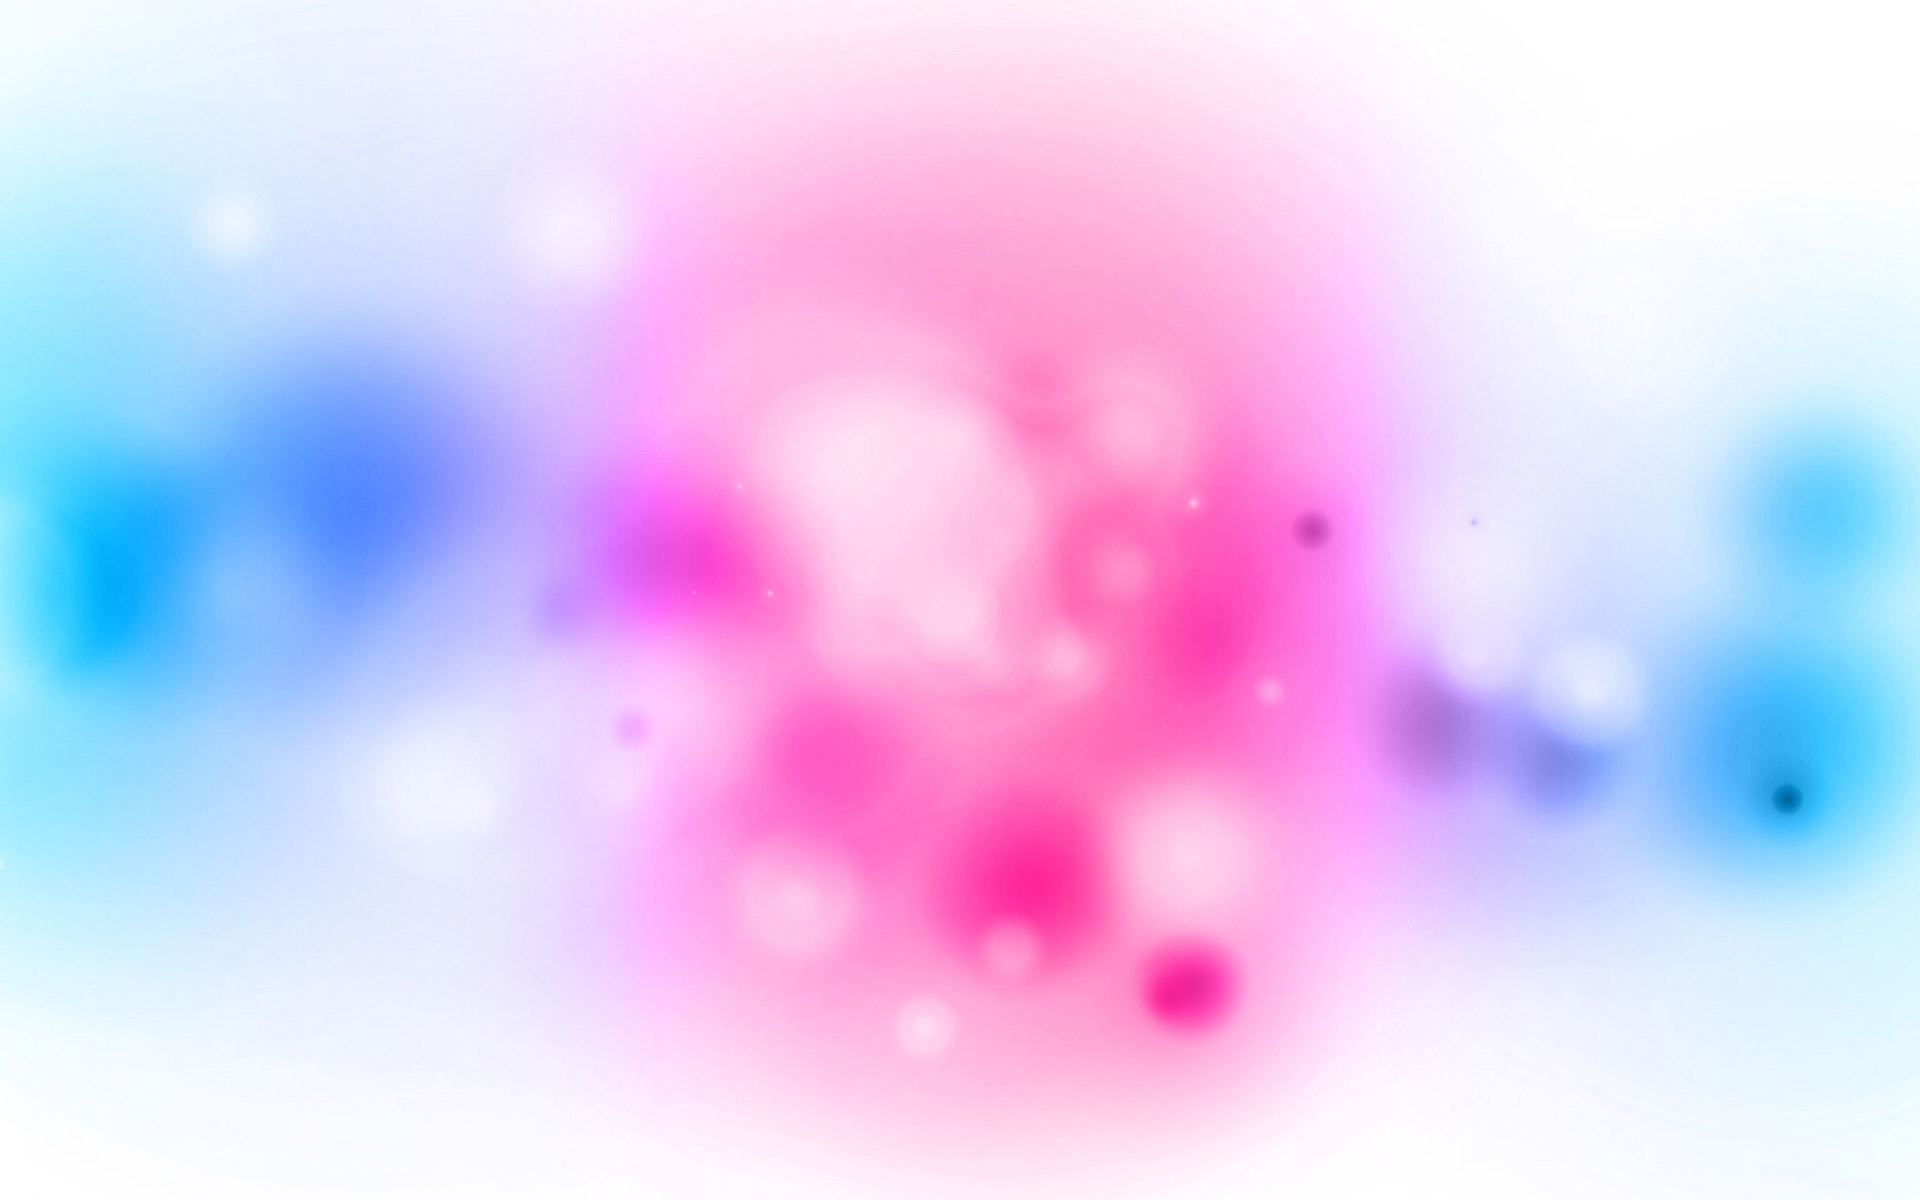 Abstract Light Background 20. Download Full Size File